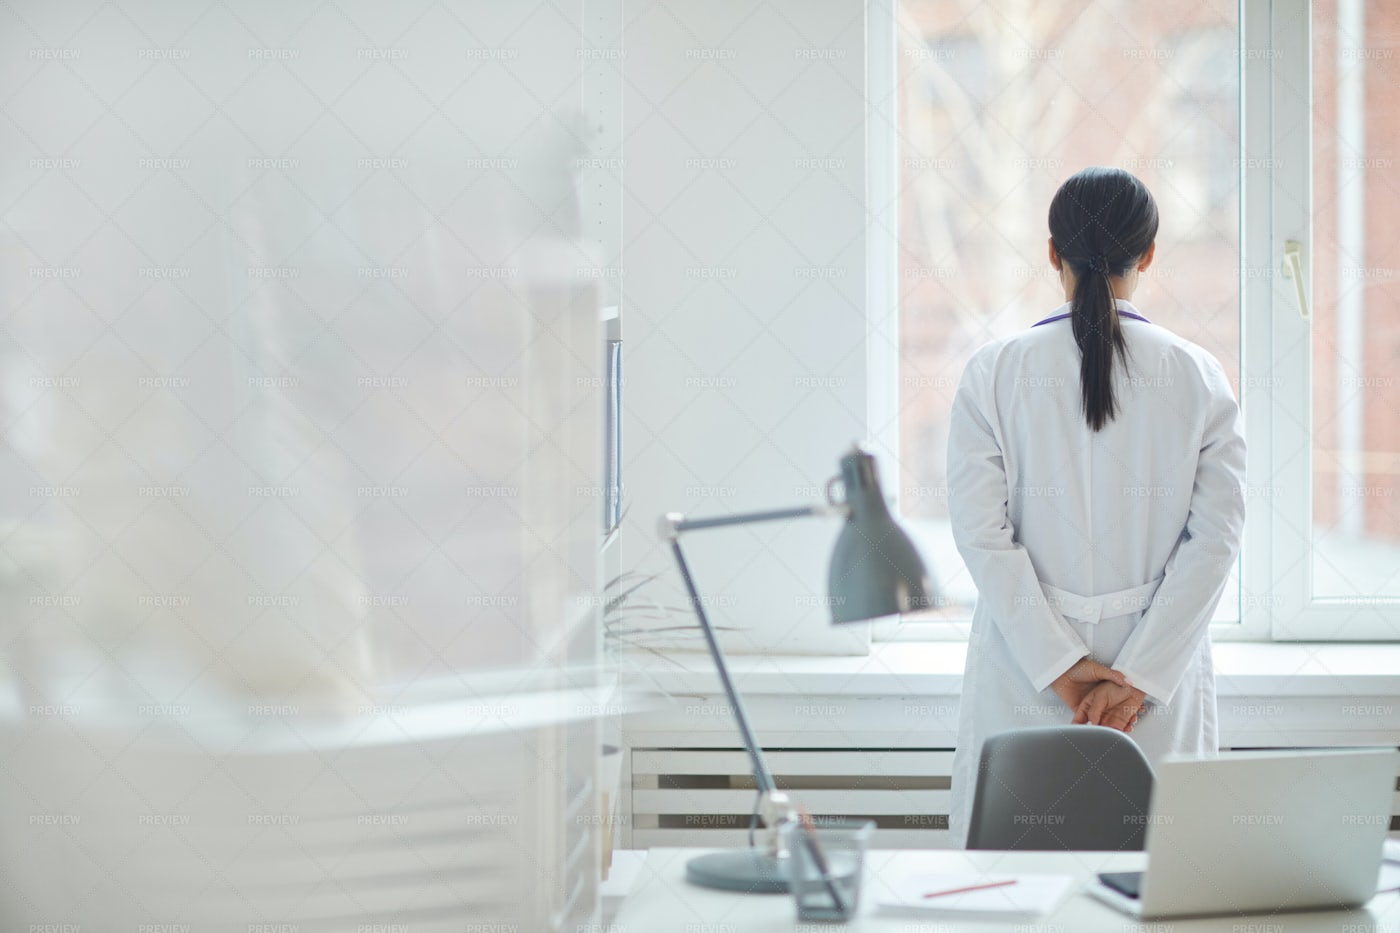 Female Doctor Looking Out Window: Stock Photos